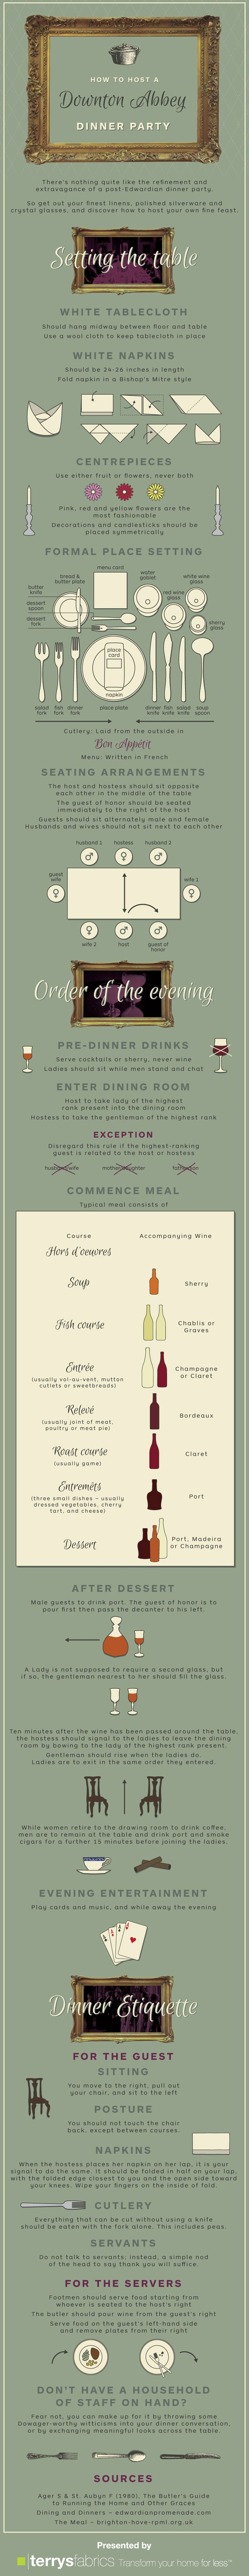 How To Host A Downton Abbey Dinner Party #Infographic #Food #HowTo